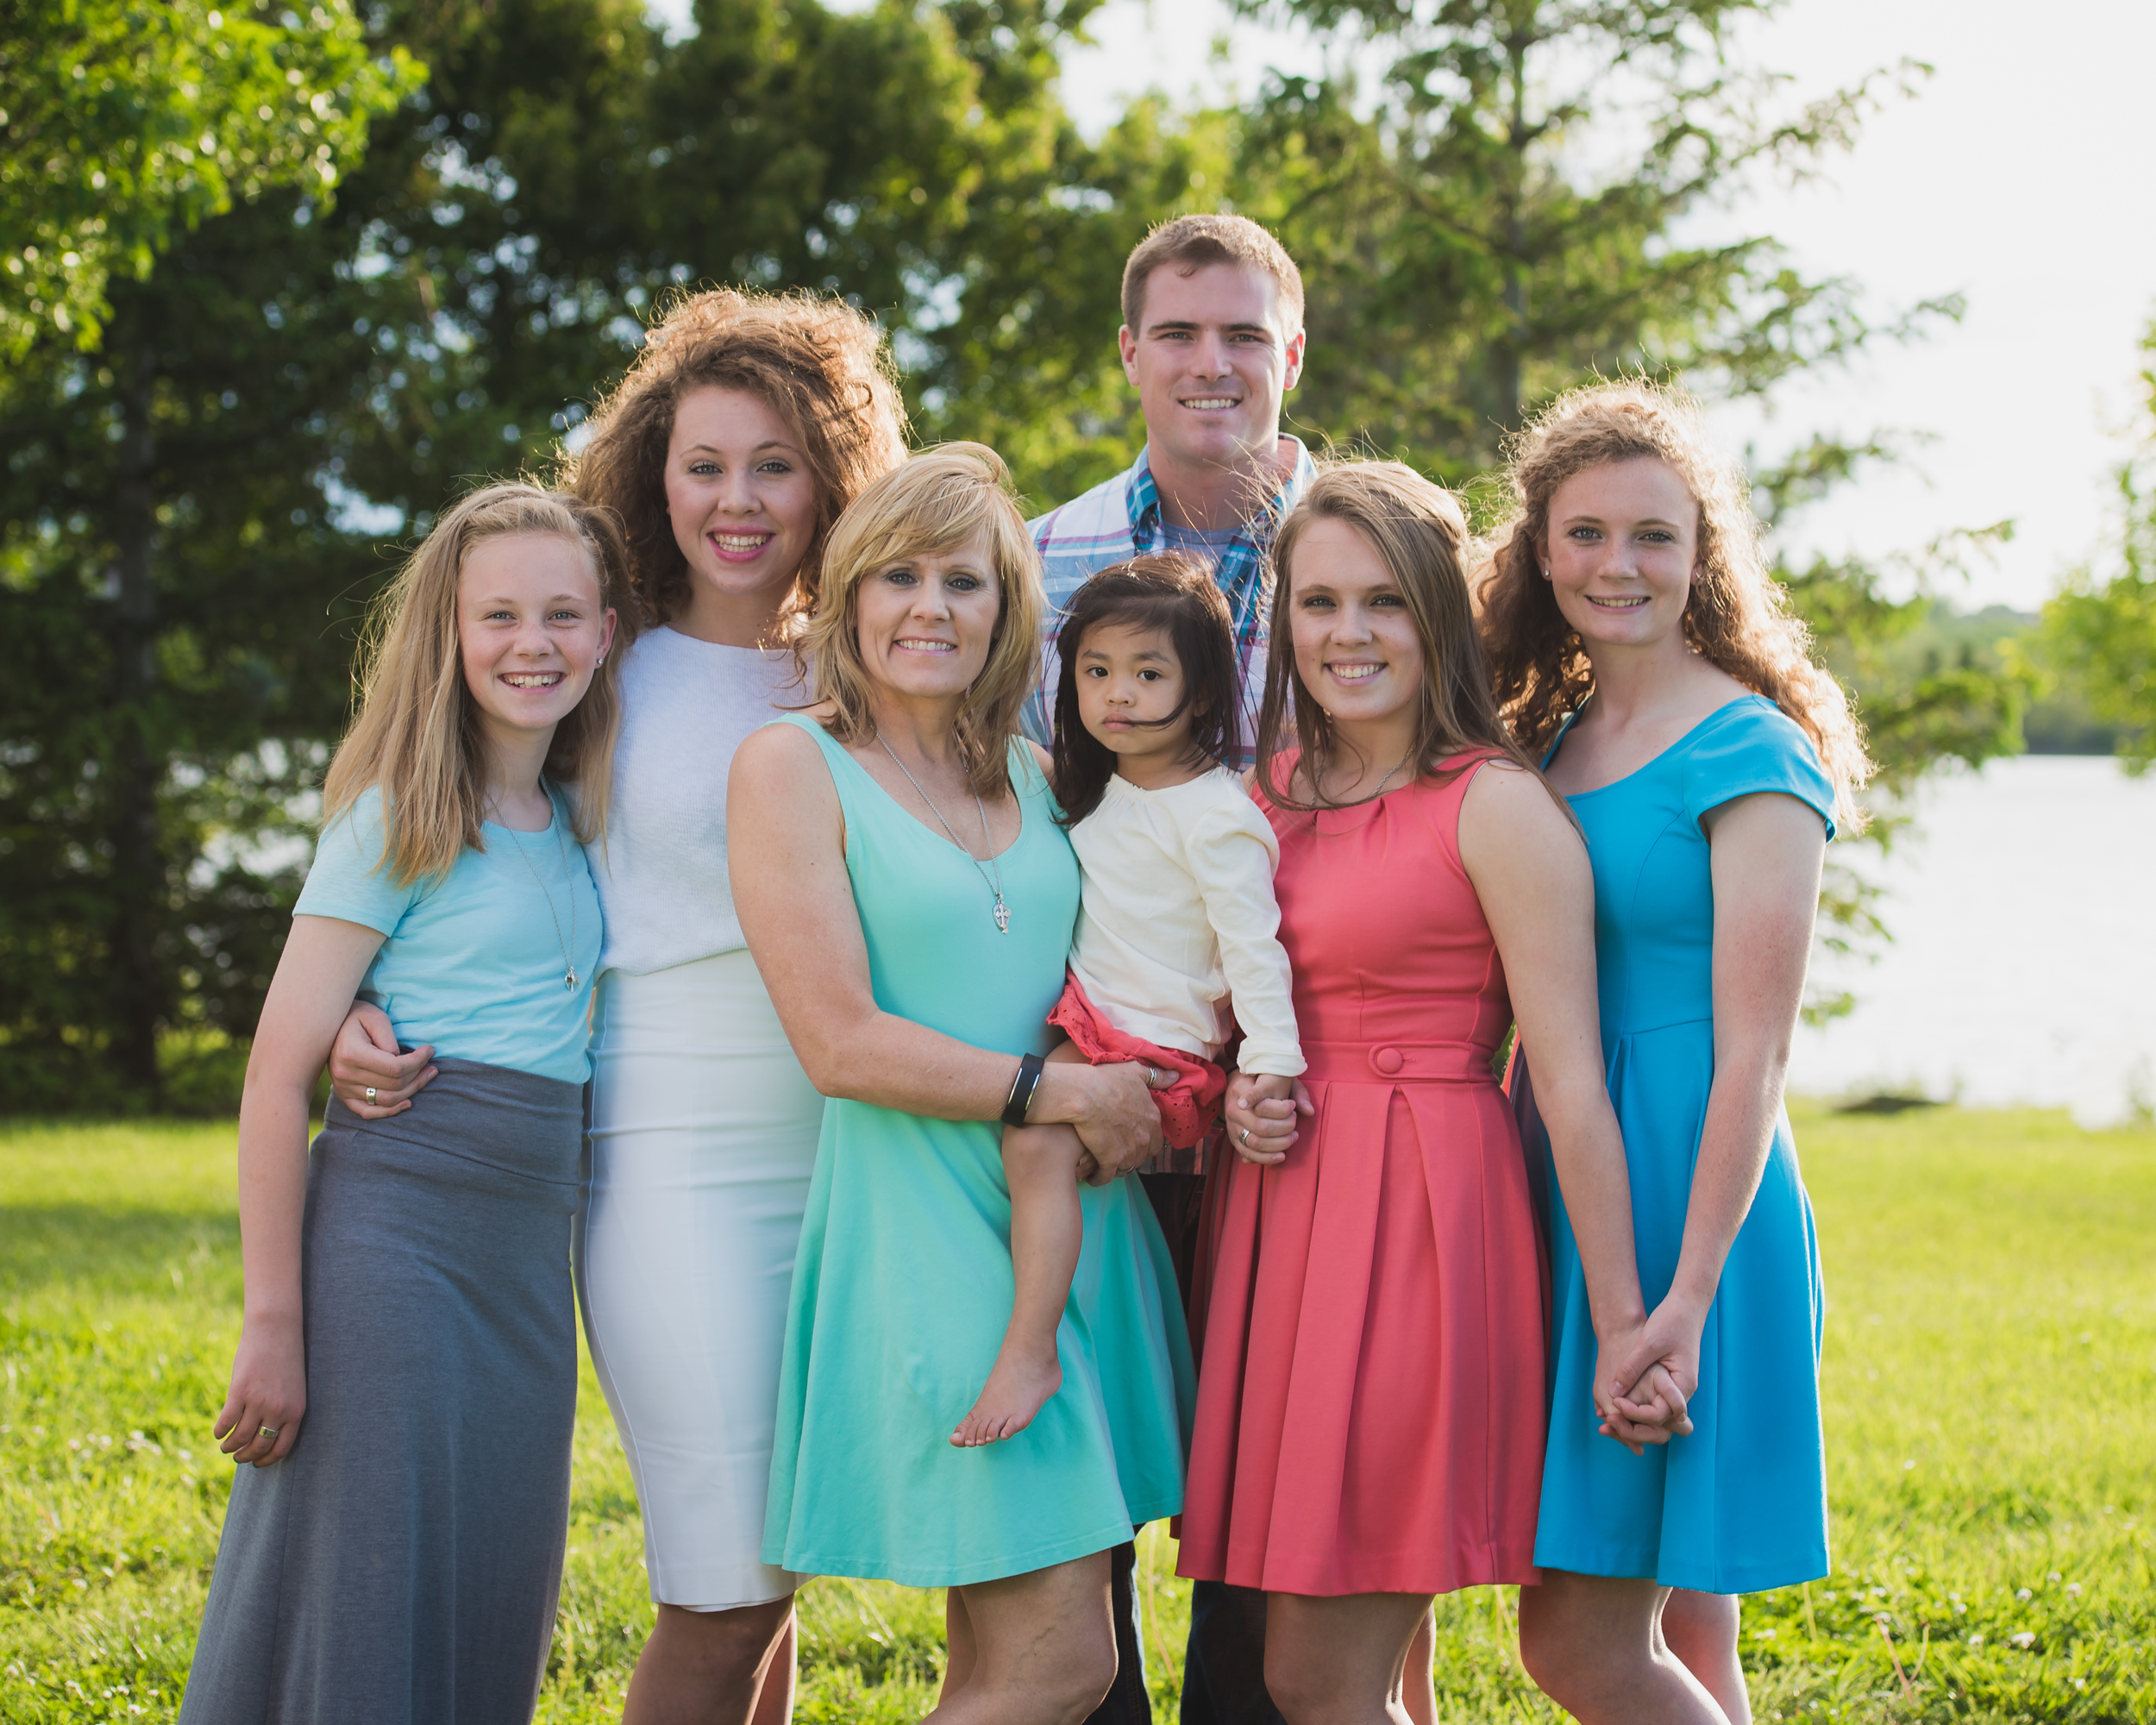 Vanderhorst Family Shoot1.jpg